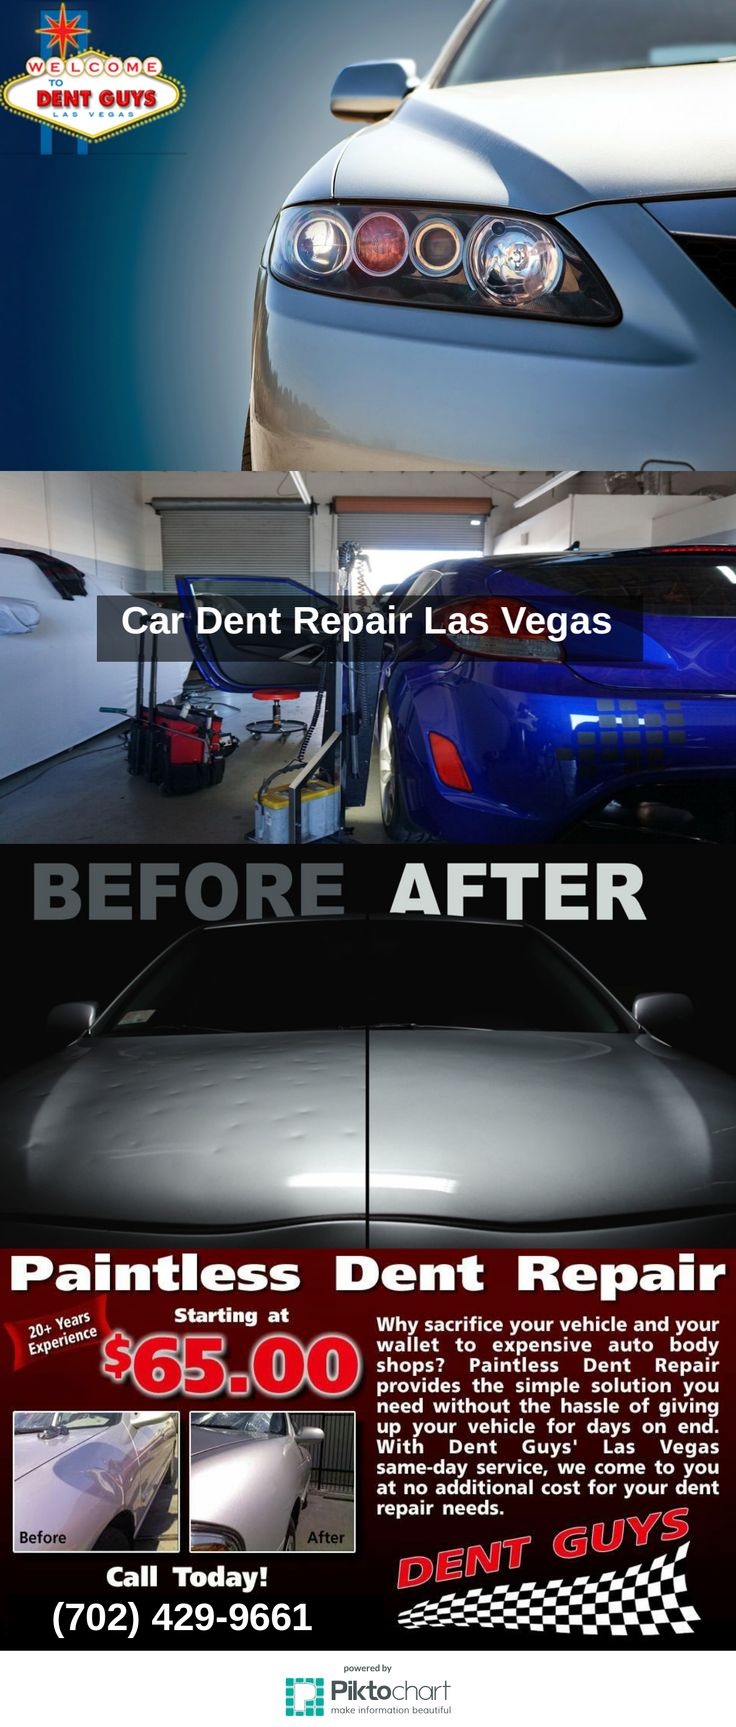 Colour carsmetic - Dent Guys Las Vegas Provides Paintless Dent Repair Bumper Repairs And Spray On Bed